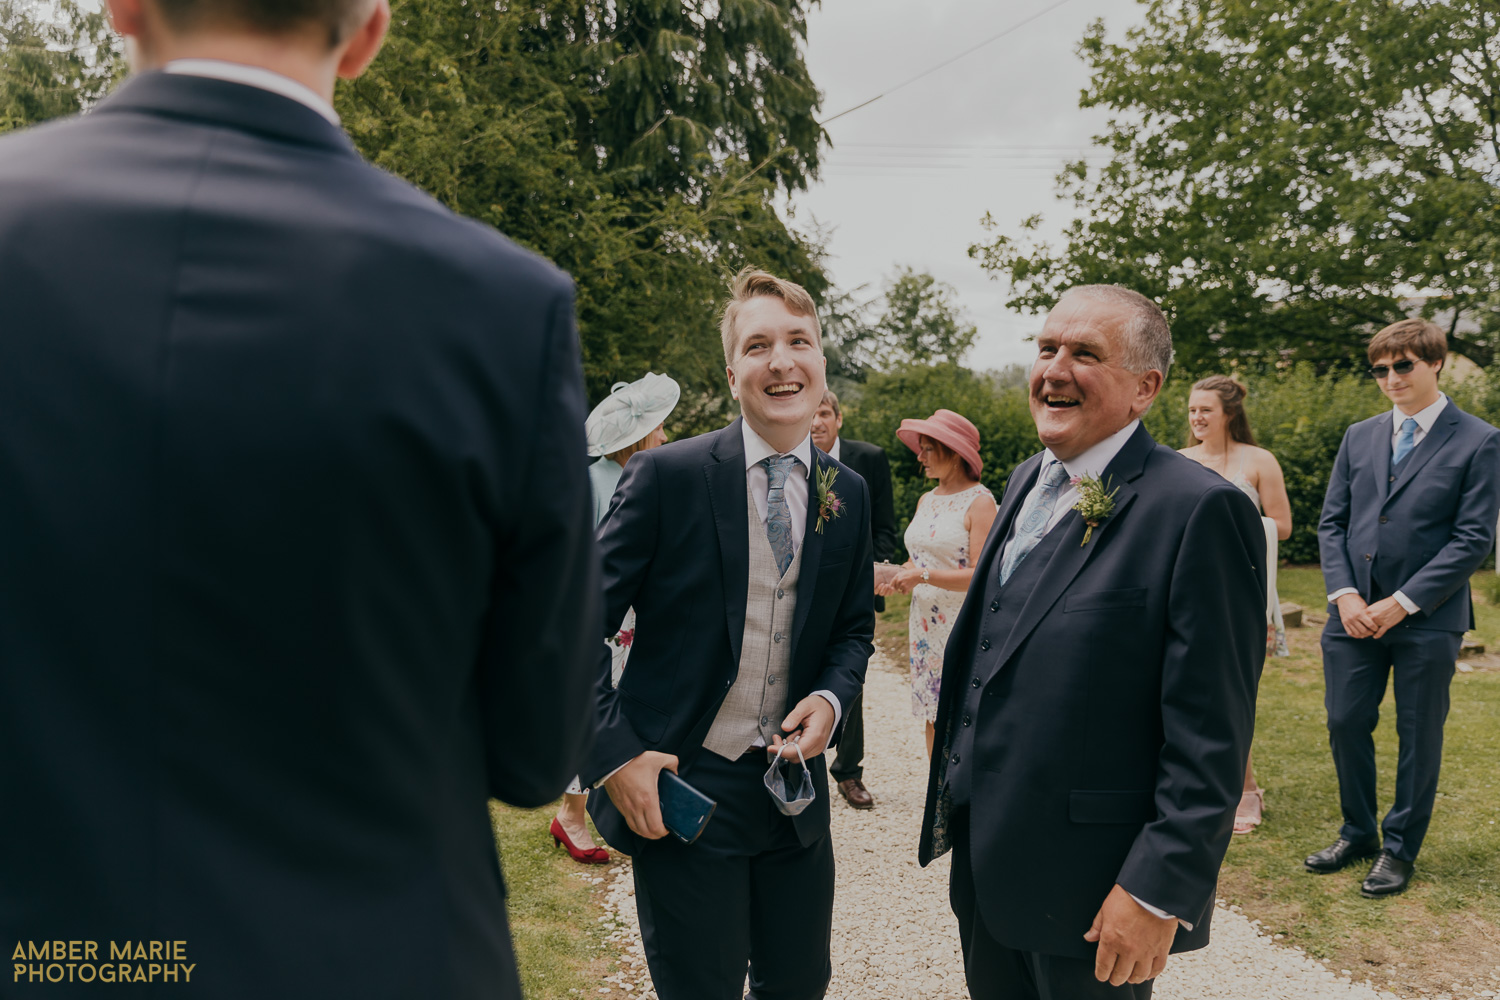 Candid wedding photography at Cotswold Church Wedding